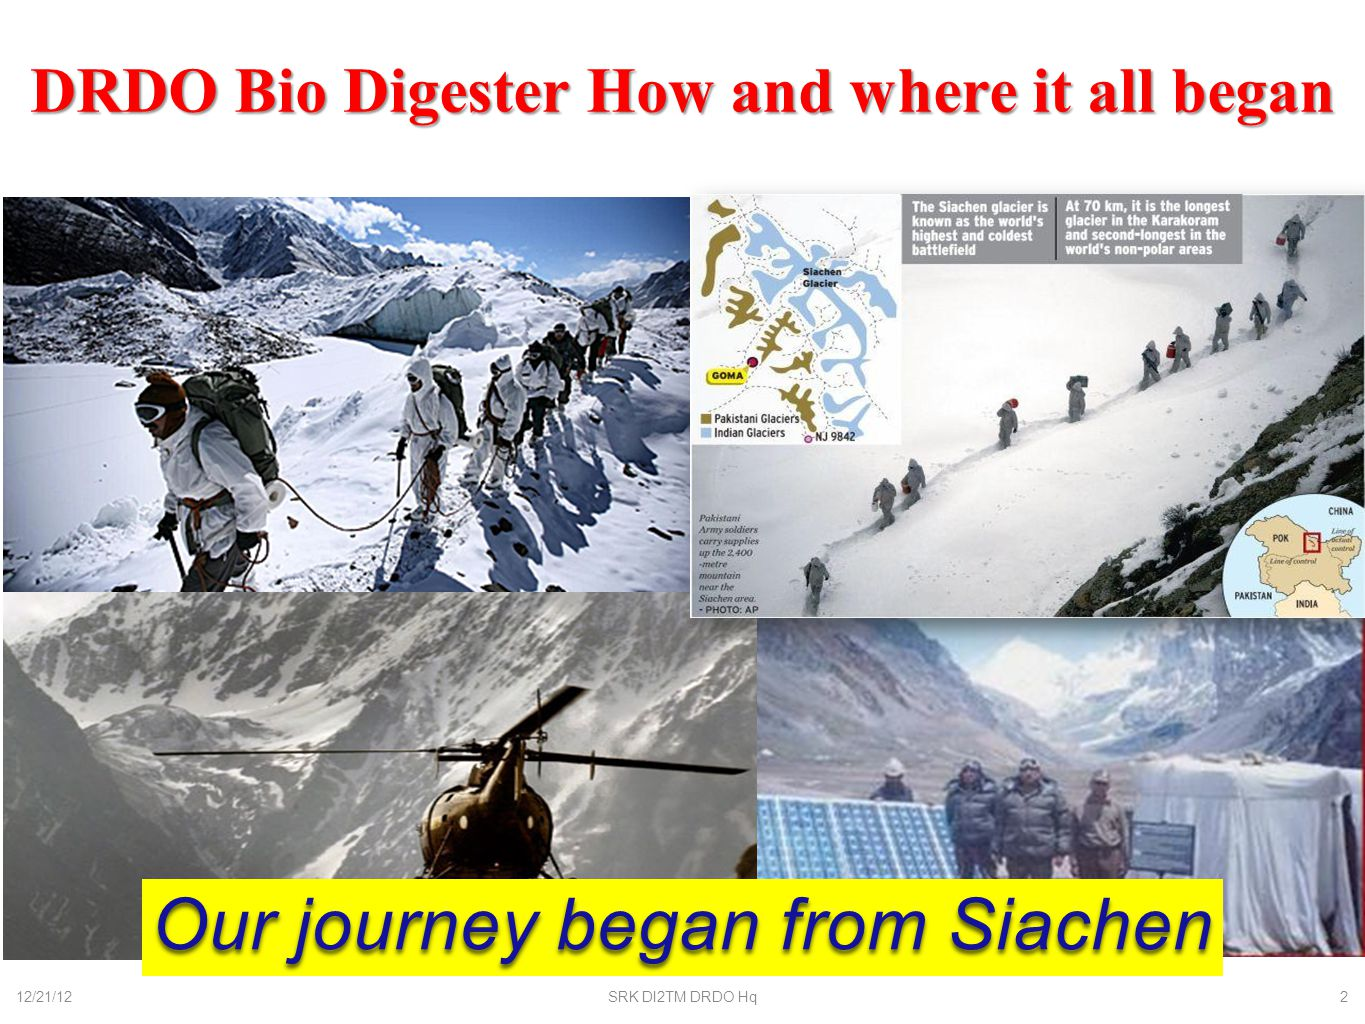 DRDO Bio Digester How and where it all began